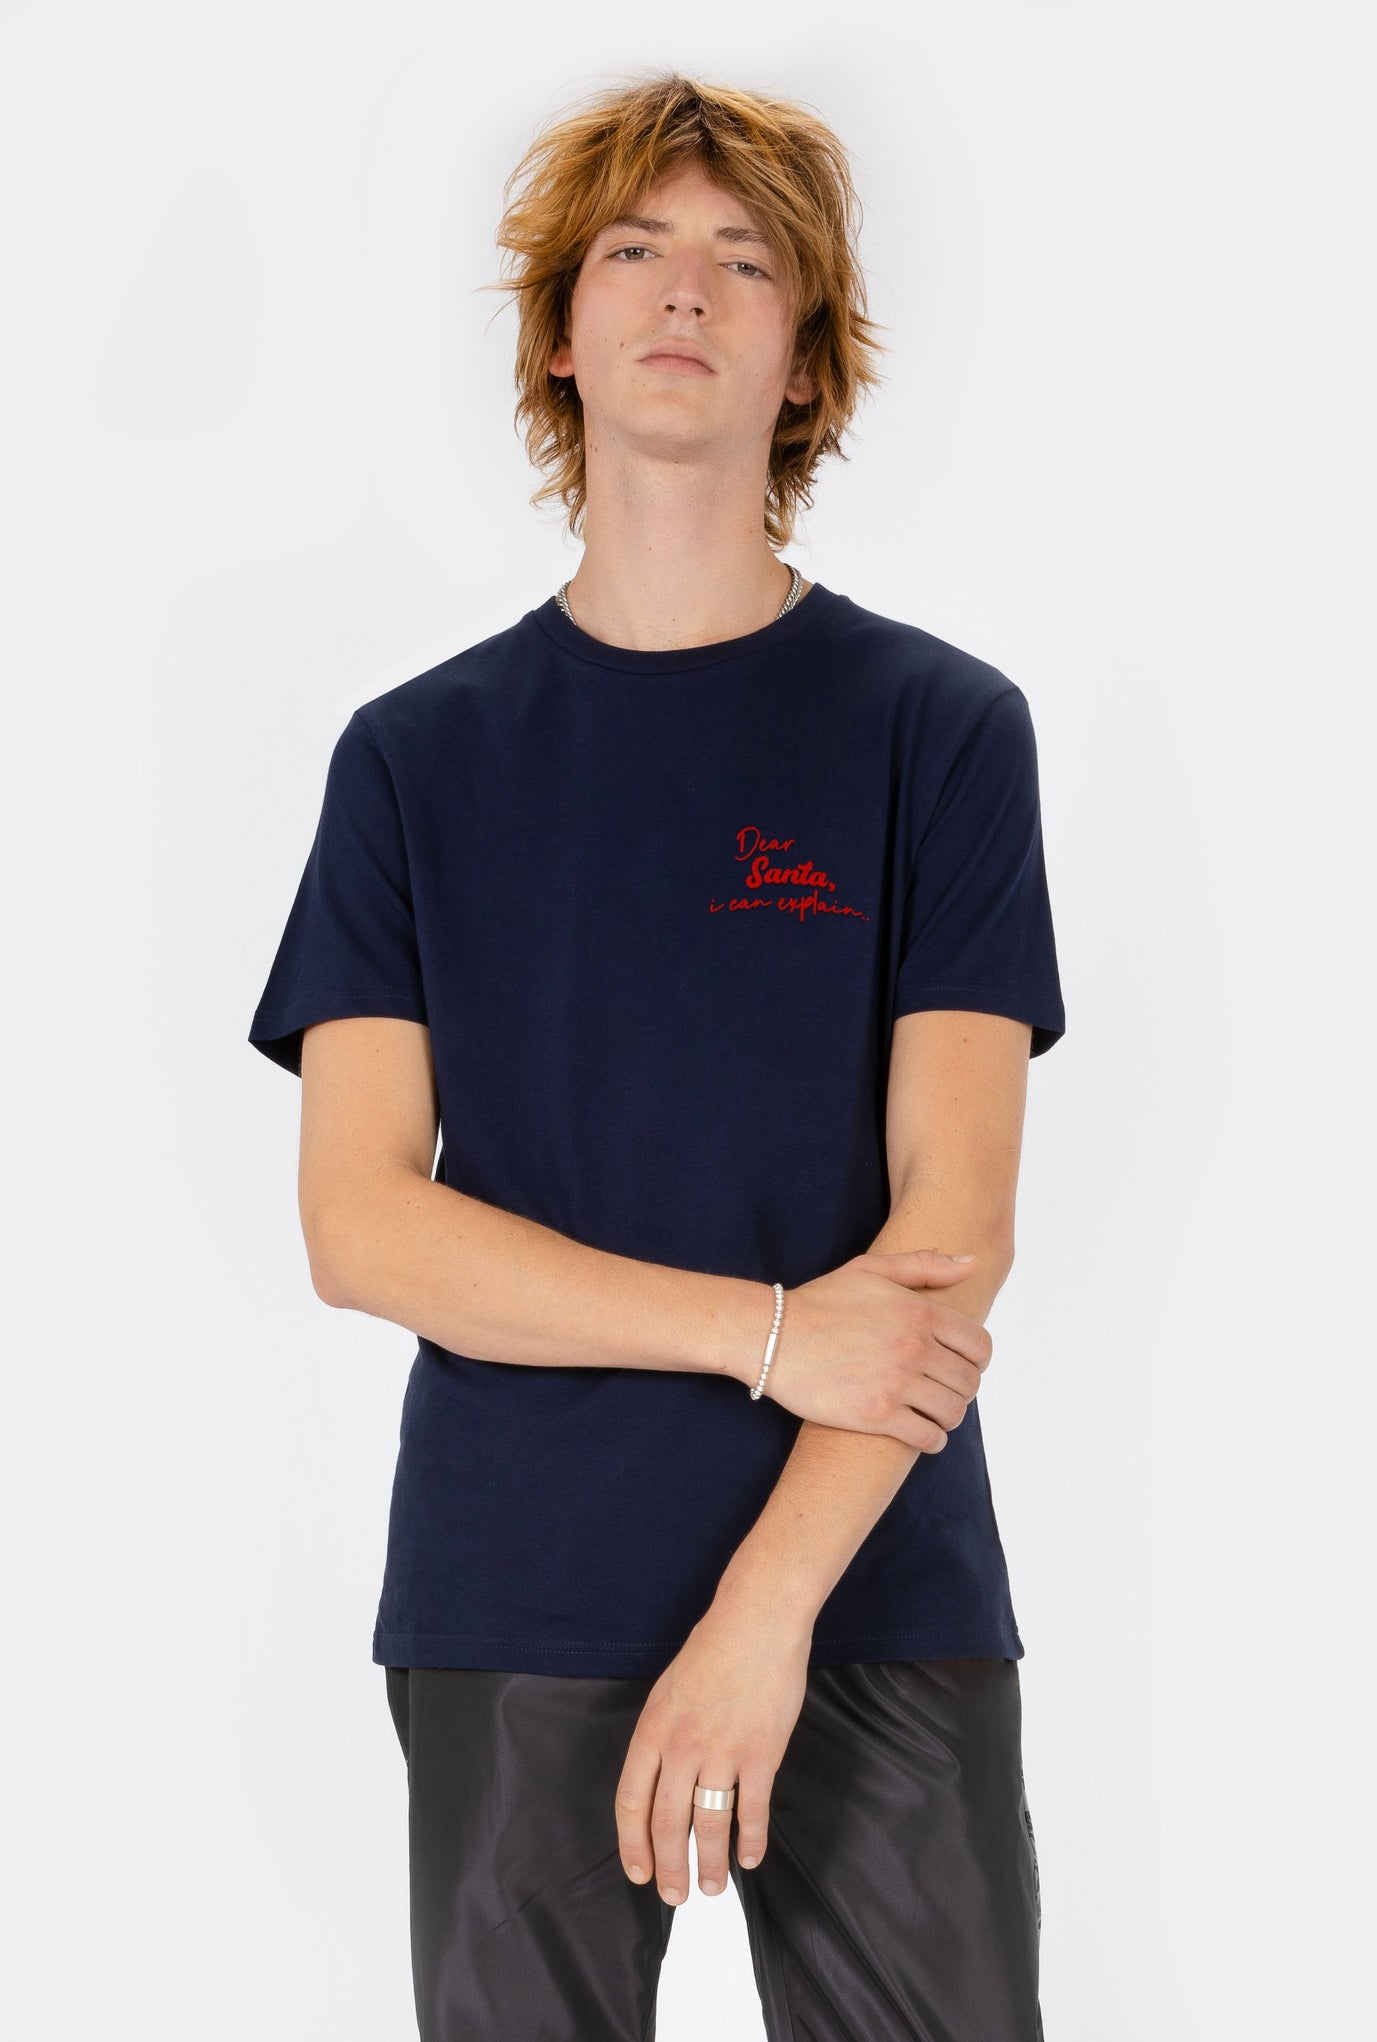 T-Shirt S/S Dear Santa - Embroidered